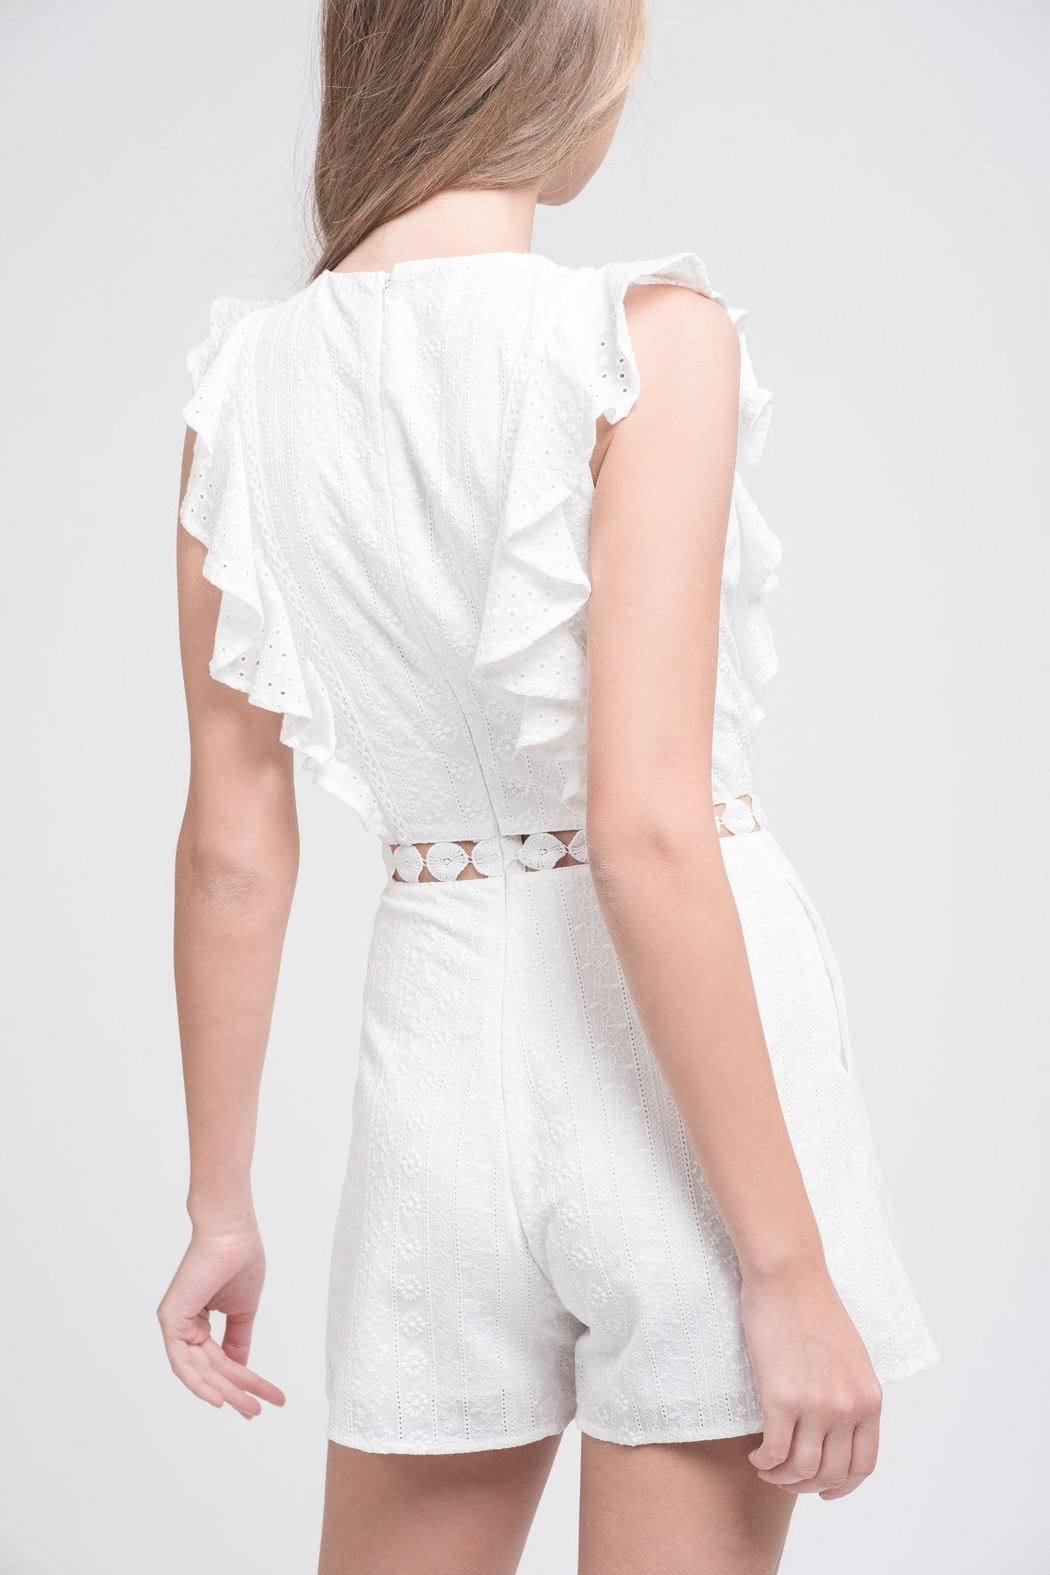 bb15c85261d33 J.O.A. White Ruffle Romper from Mississippi by Popfizz Boutique ...